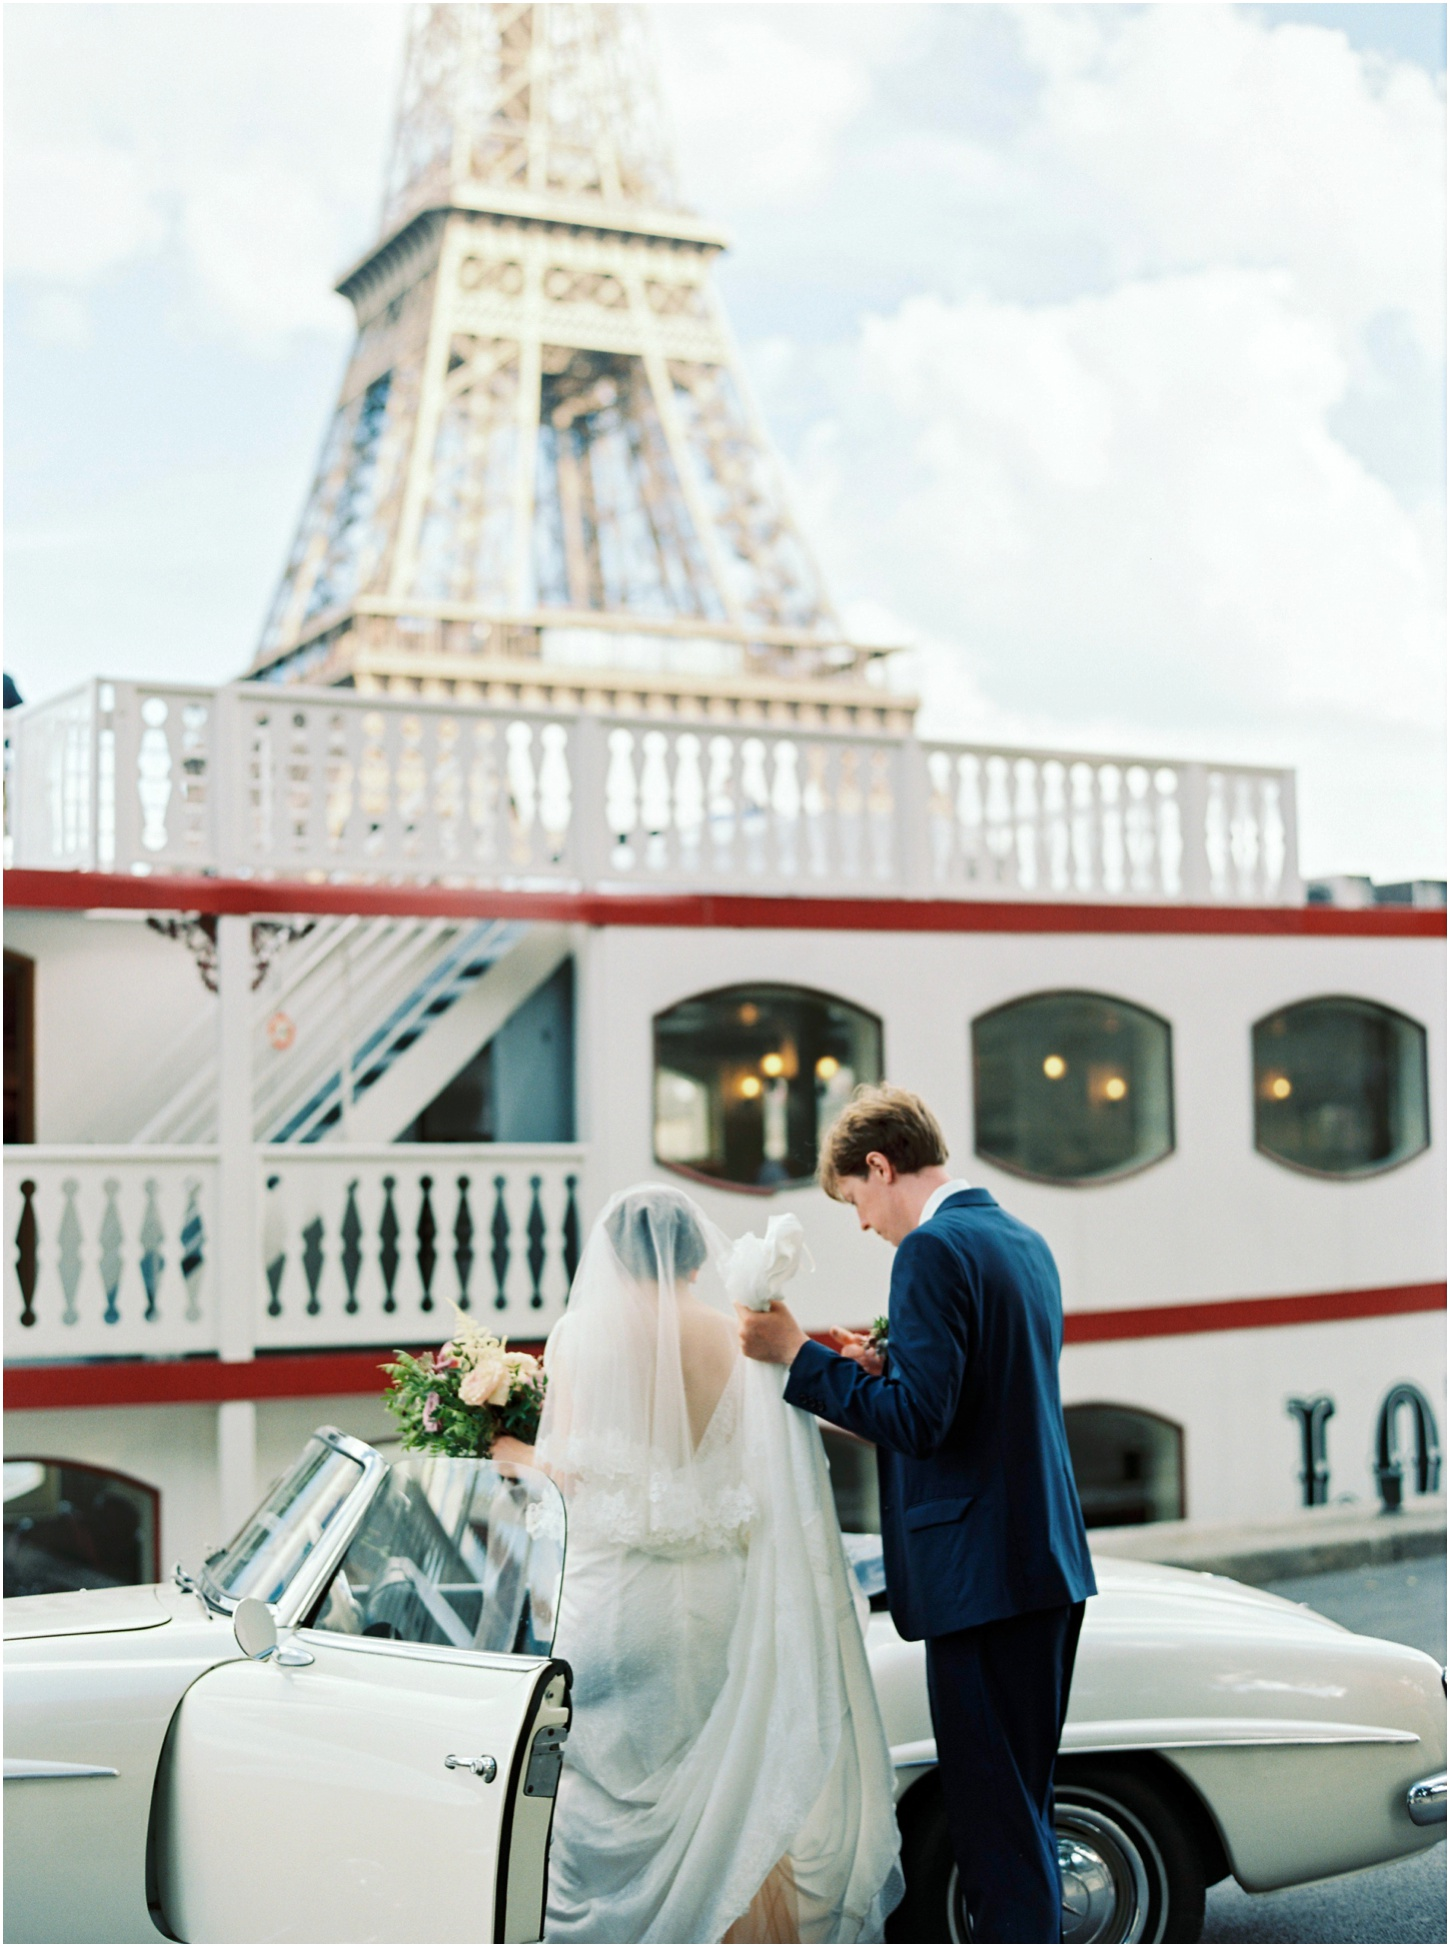 6 Tips for Finding Your Destination Wedding Photographer